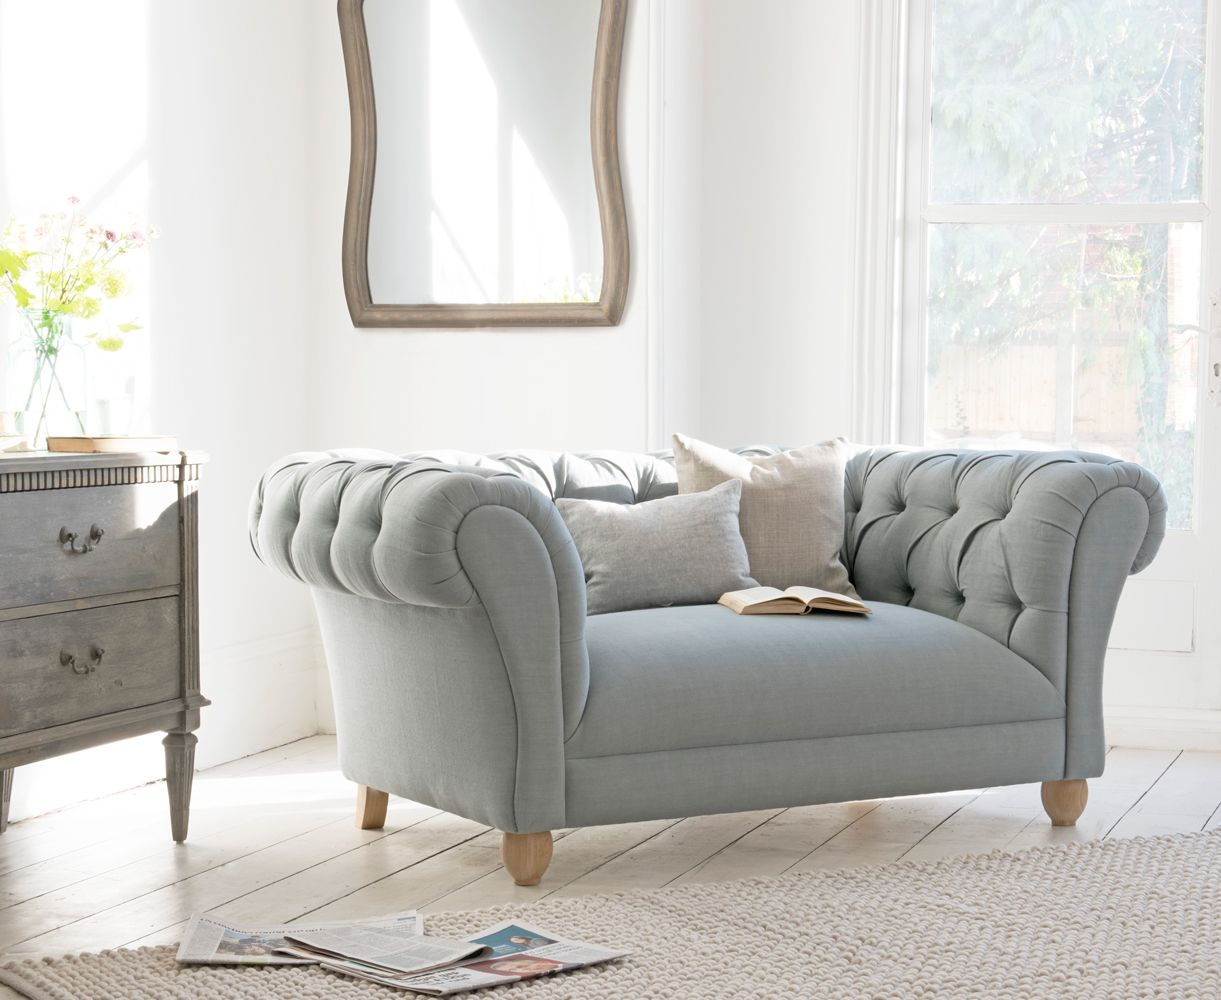 Young Bean Love seat Chesterfield sofa living room